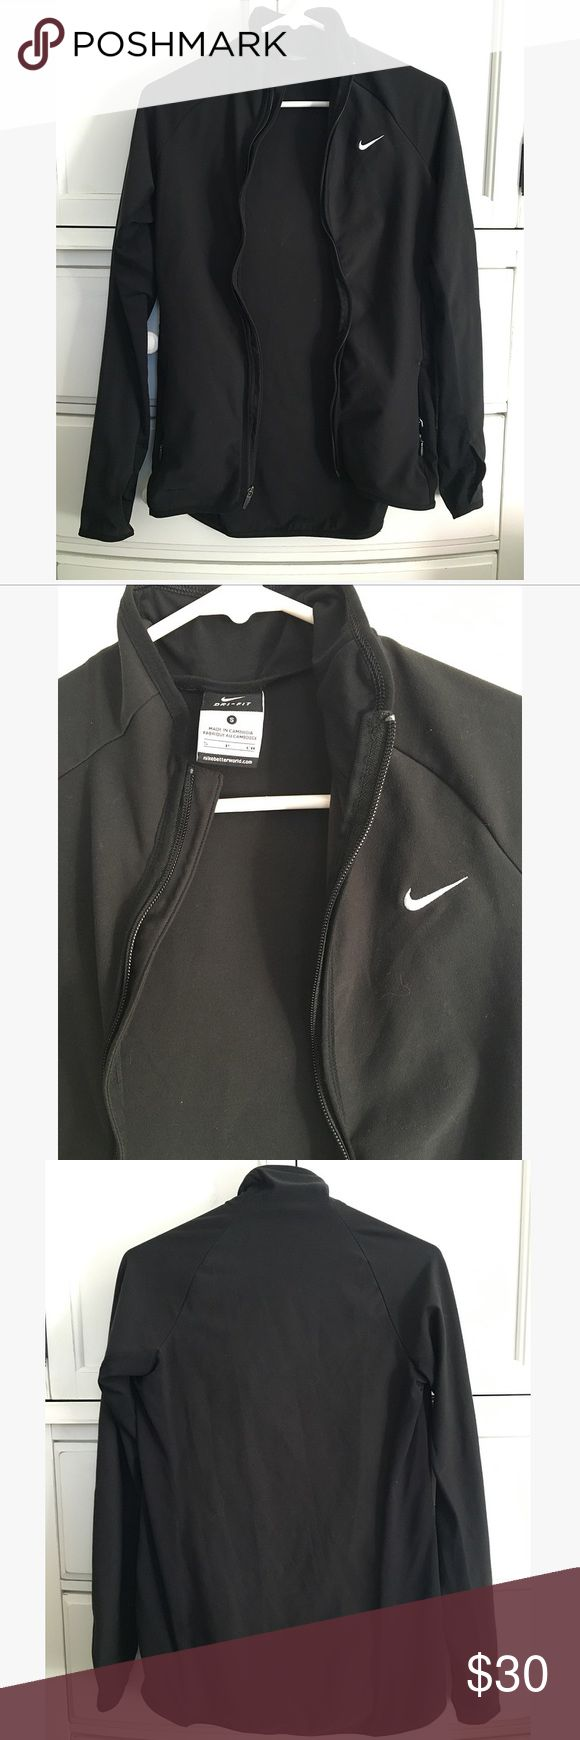 EUC Nike Black Zip Up Sz S EUC Nike Black Zip Up size small. Lighter shade of black on front and back with a dark shade of black down the sides. Two zip pockets and thumbholes. Great light jacket! Nike Tops Sweatshirts & Hoodies